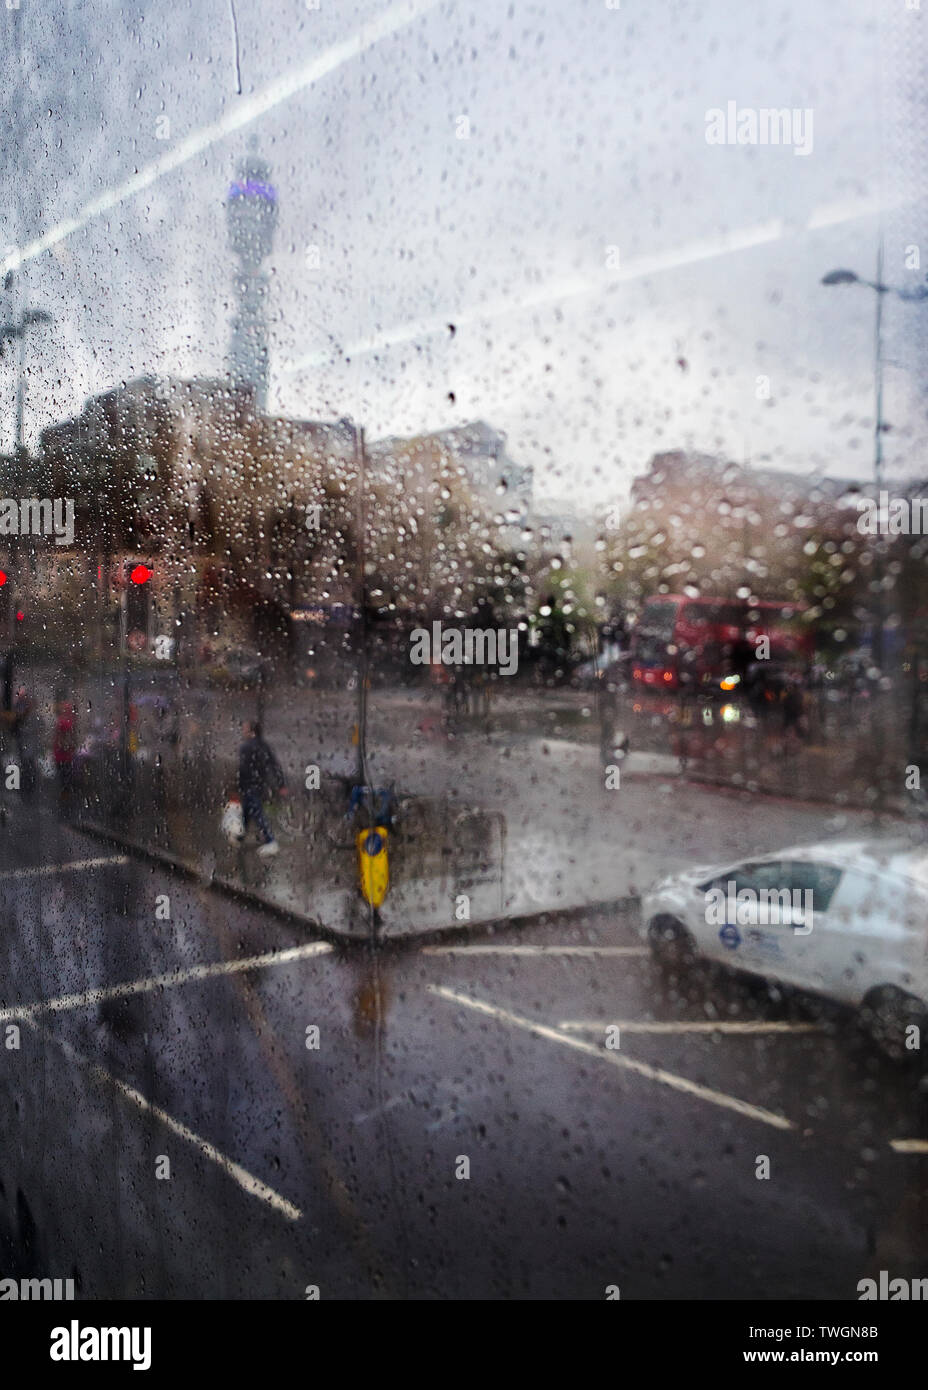 rainy view of euston road and the post office  BT tower. Stock Photo